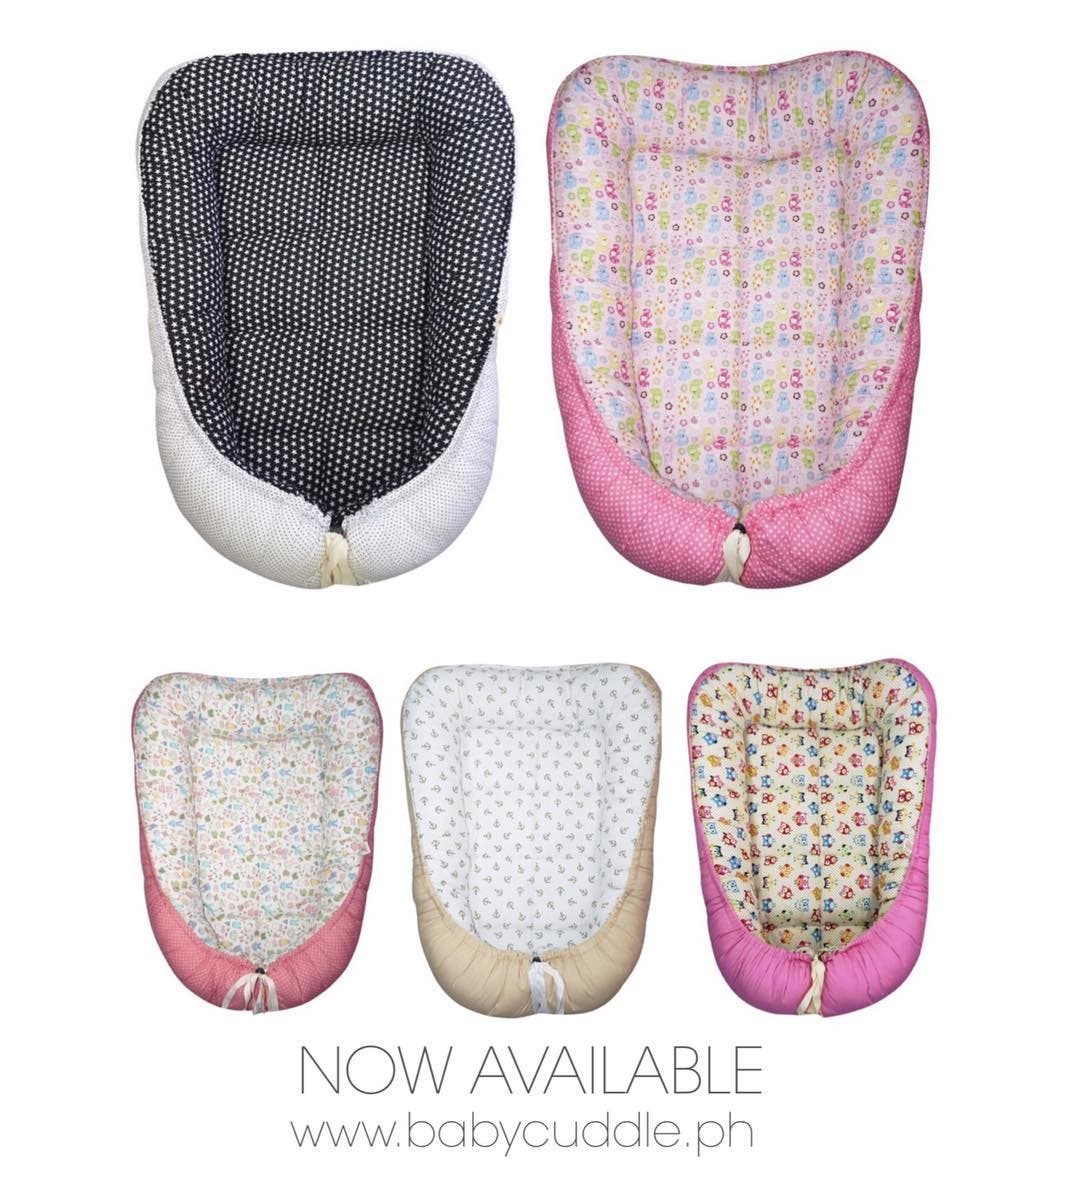 beybi-cuddle-ph-bedshare-baby-pillow-beds